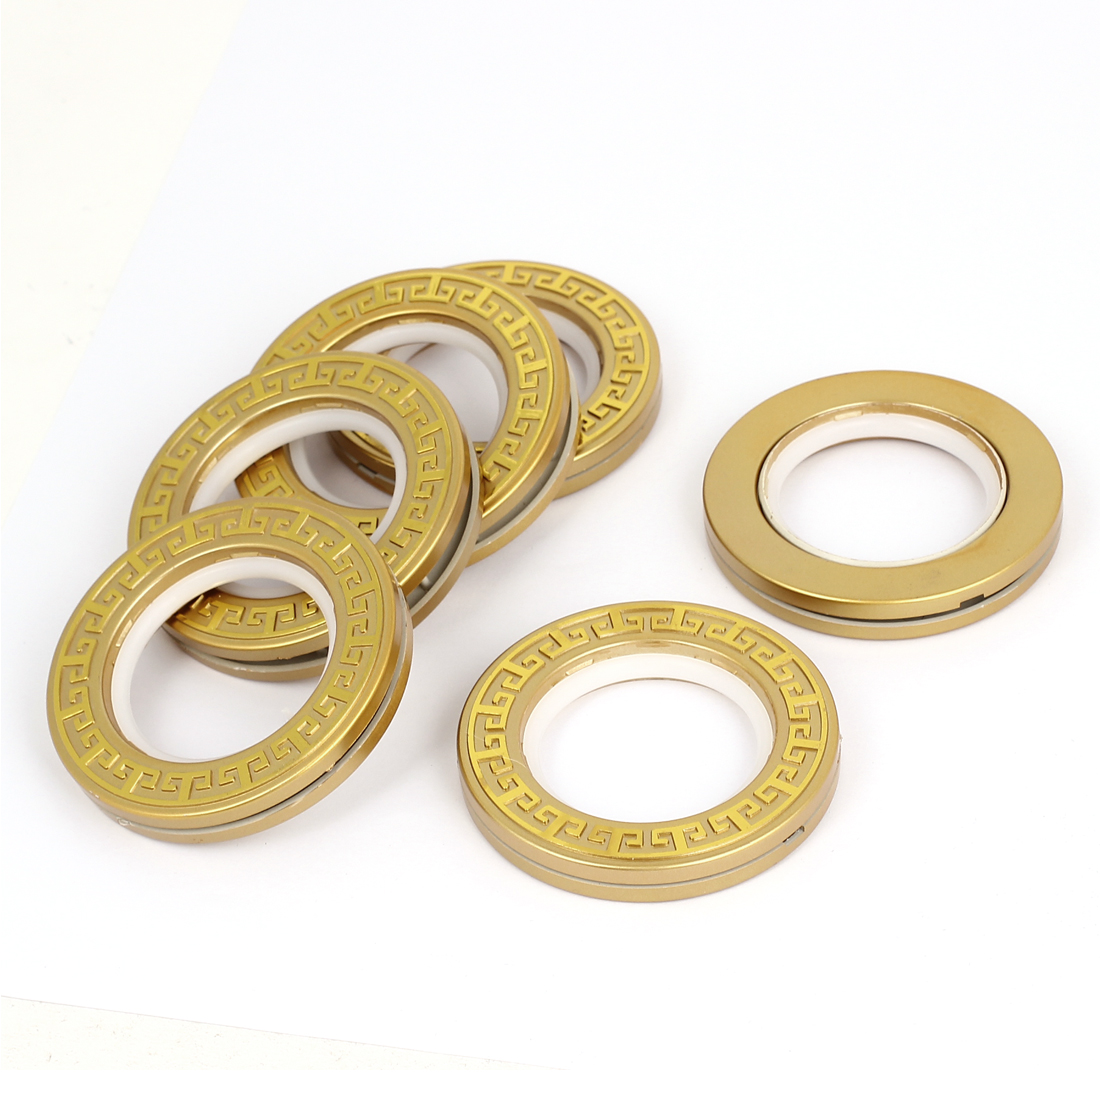 6pcs 44mm Plastic Eyelets Rings Clips Grommets Gold Tone for Curtain Drapery Rod